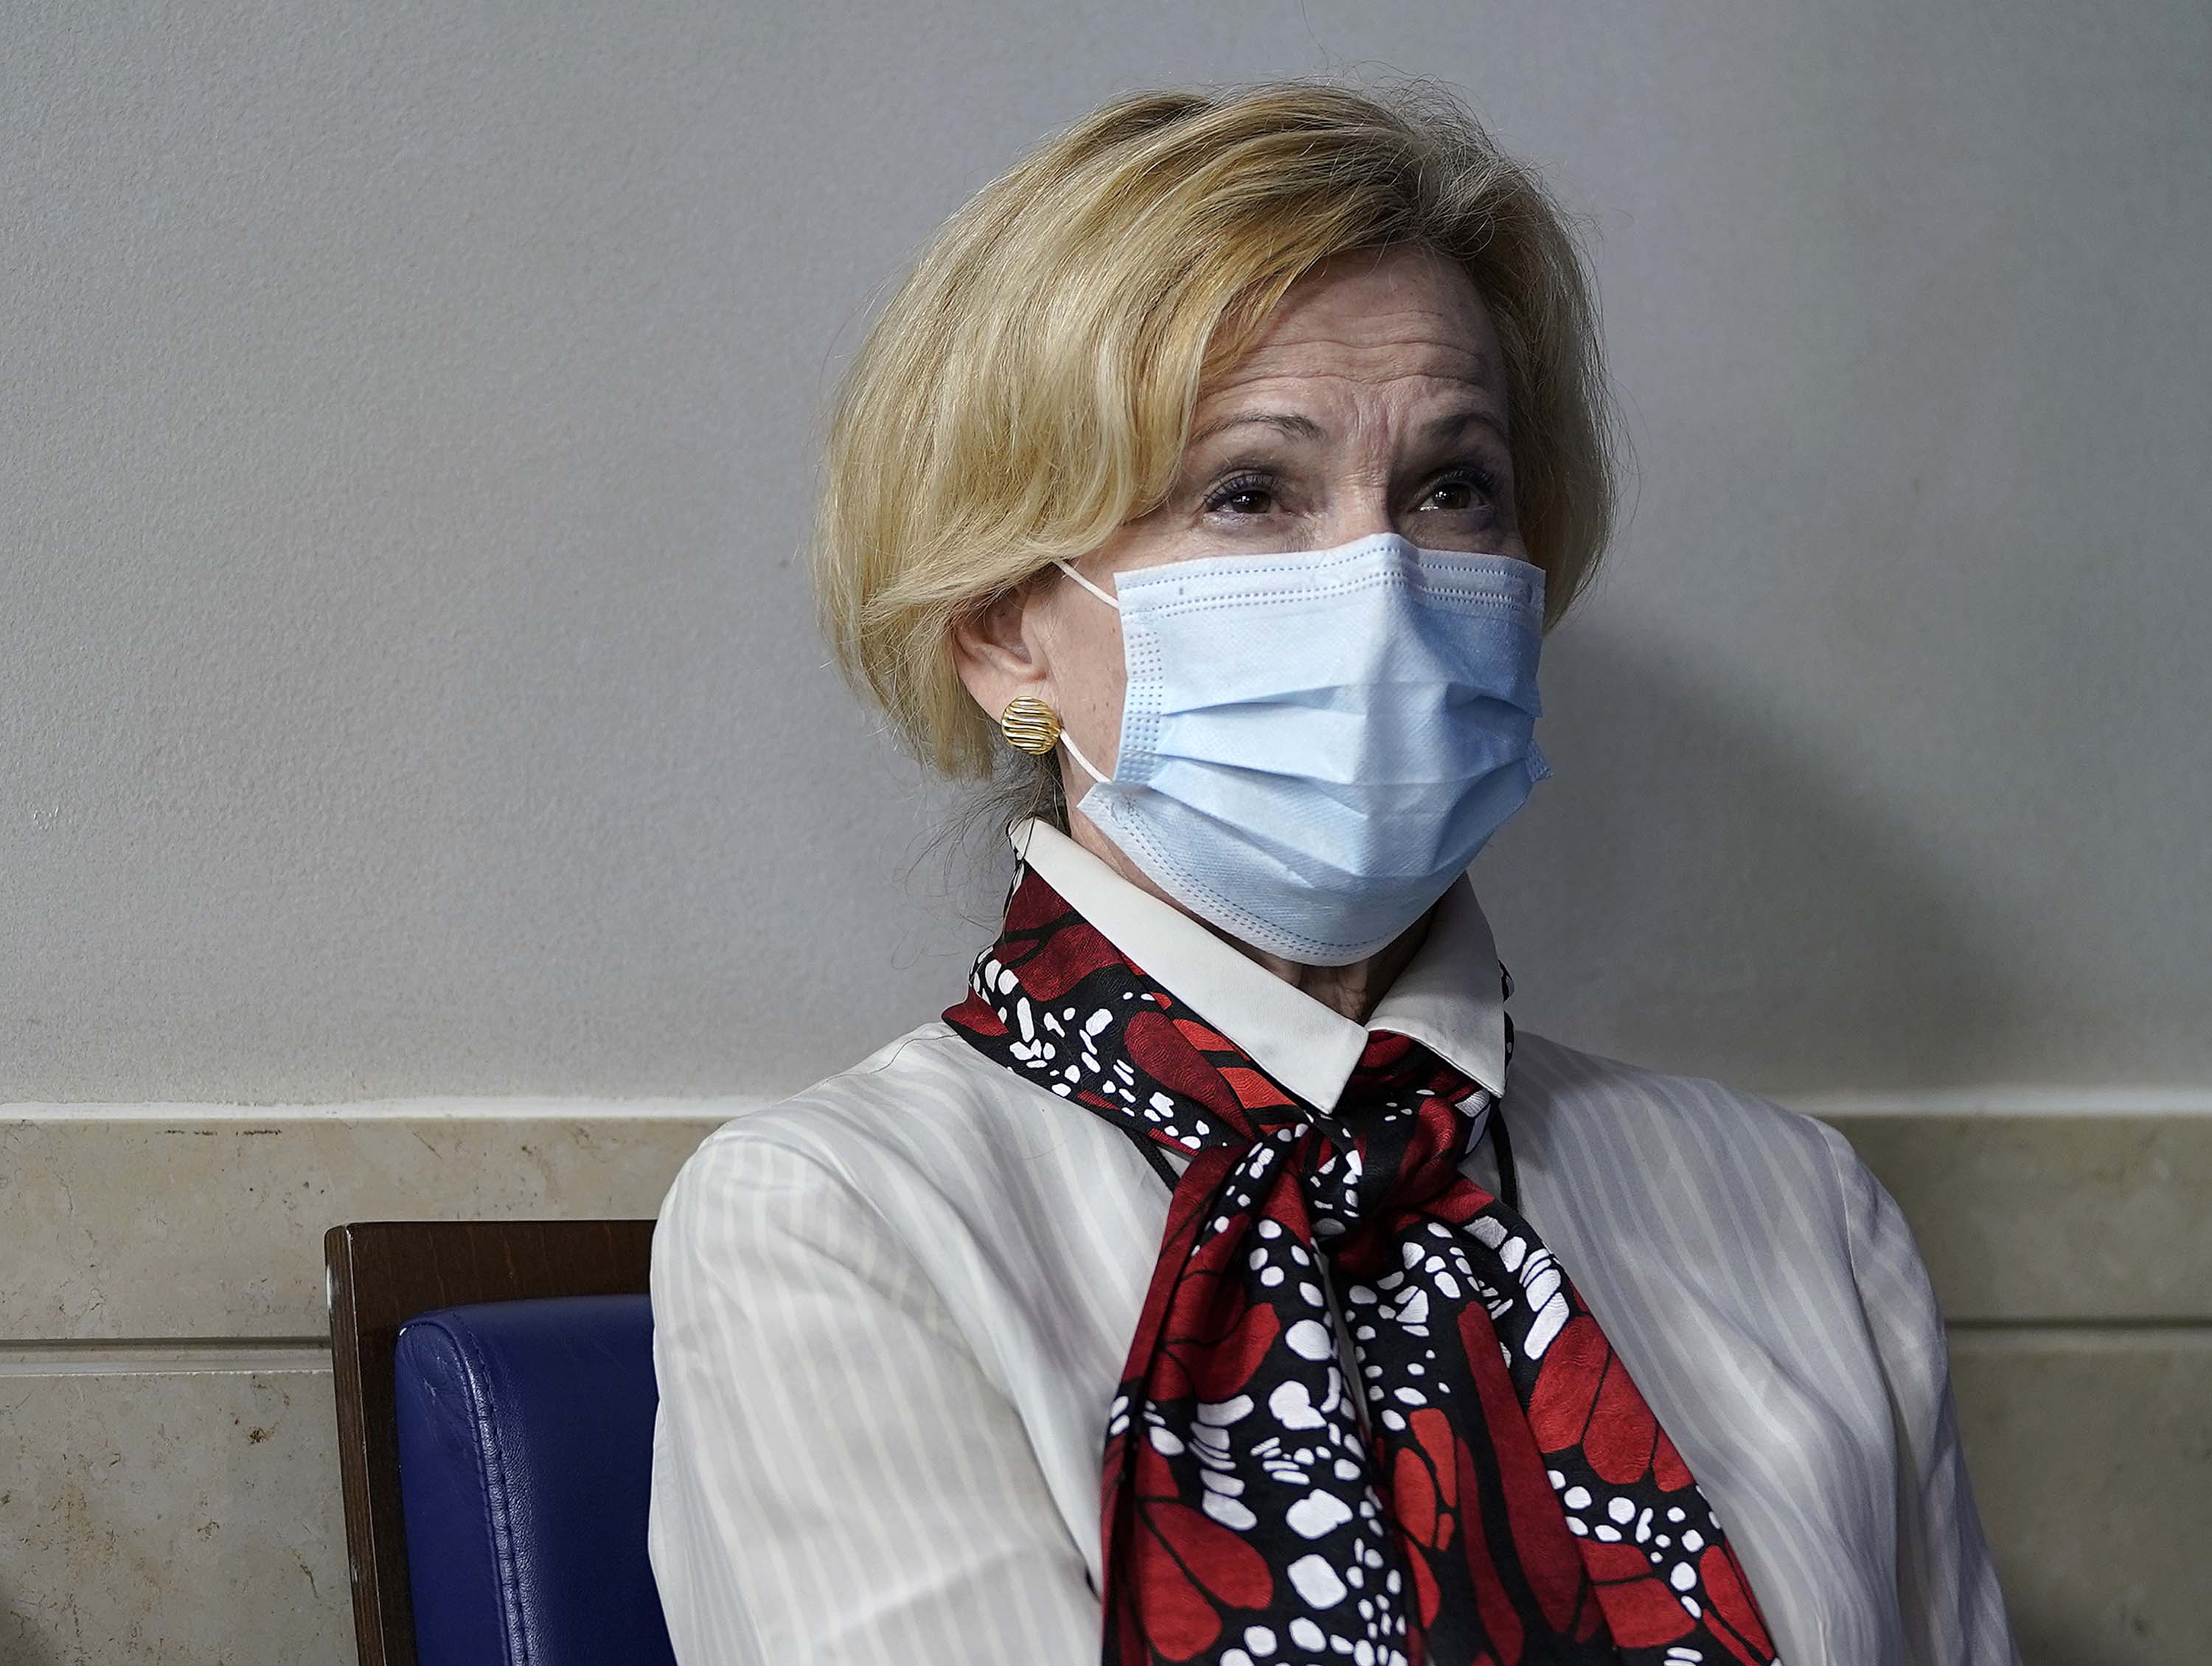 White House coronavirus task force coordinator Dr. Deborah Birx listens as President Donald Trump speaks during a news conference about his administration's response to the ongoing coronavirus pandemic at the White House on July 23.